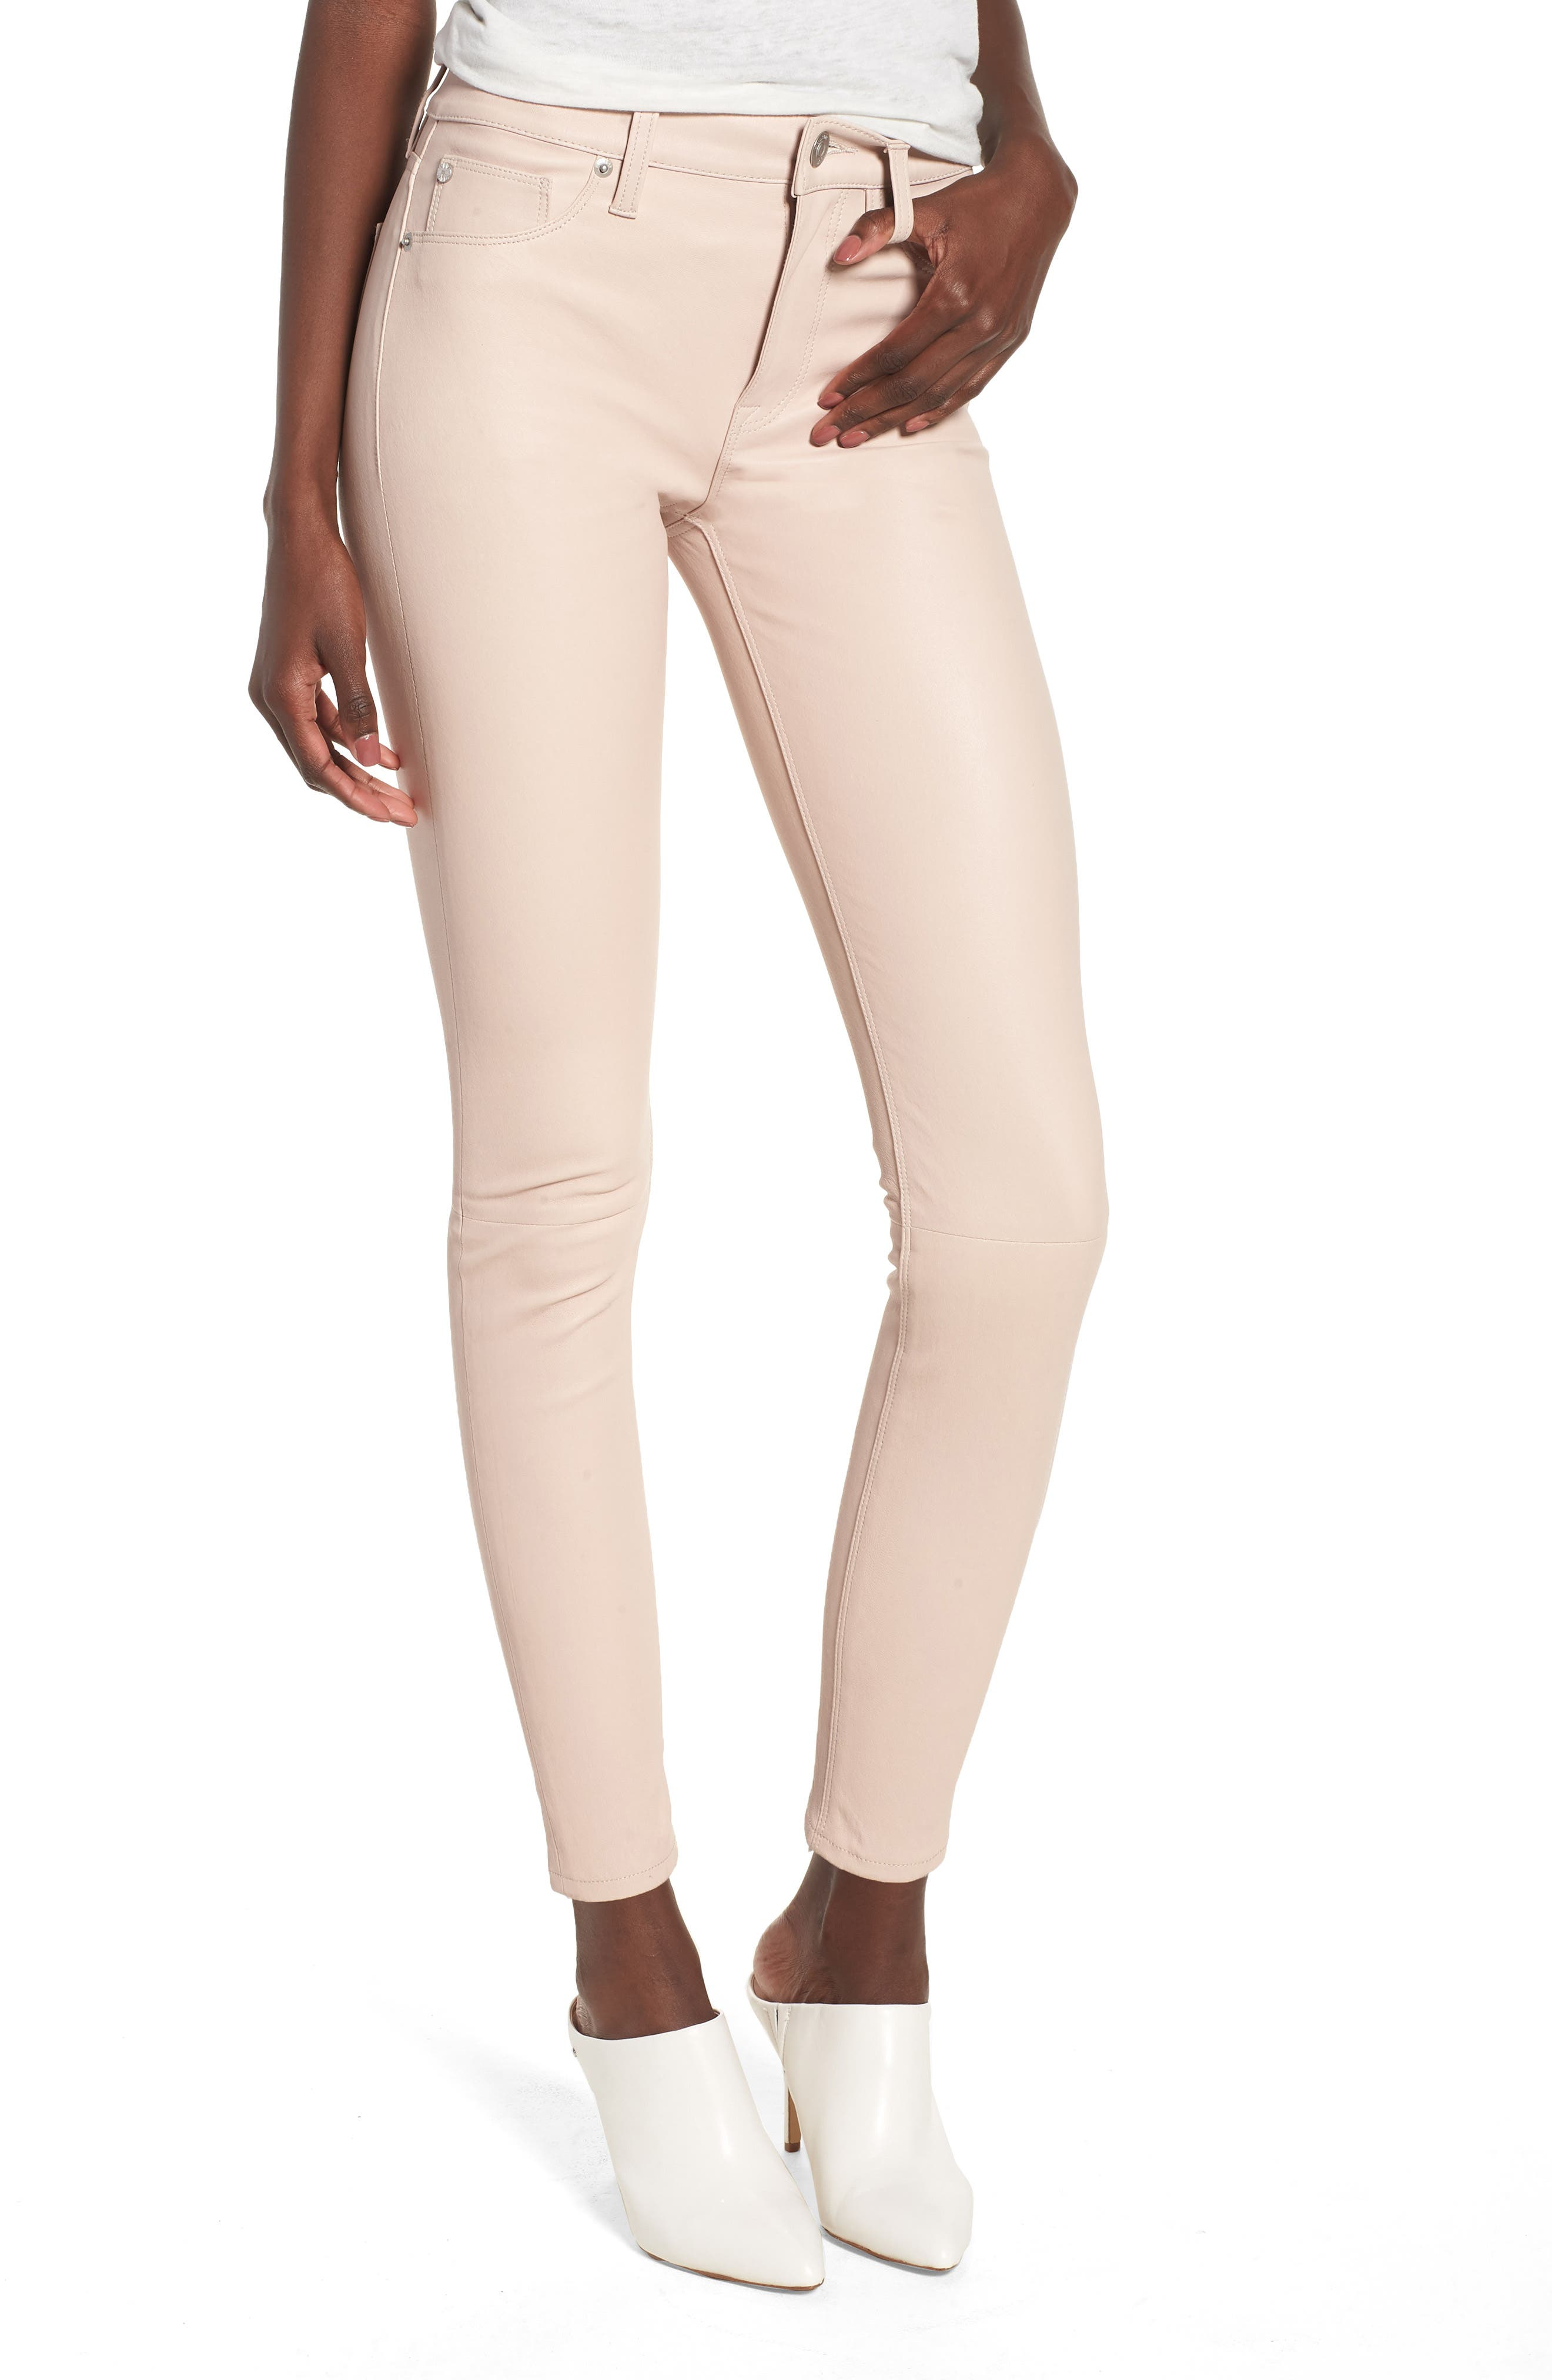 Hudson Jeans Barbara High Waist Ankle Skinny Leather Jeans (Blushing)